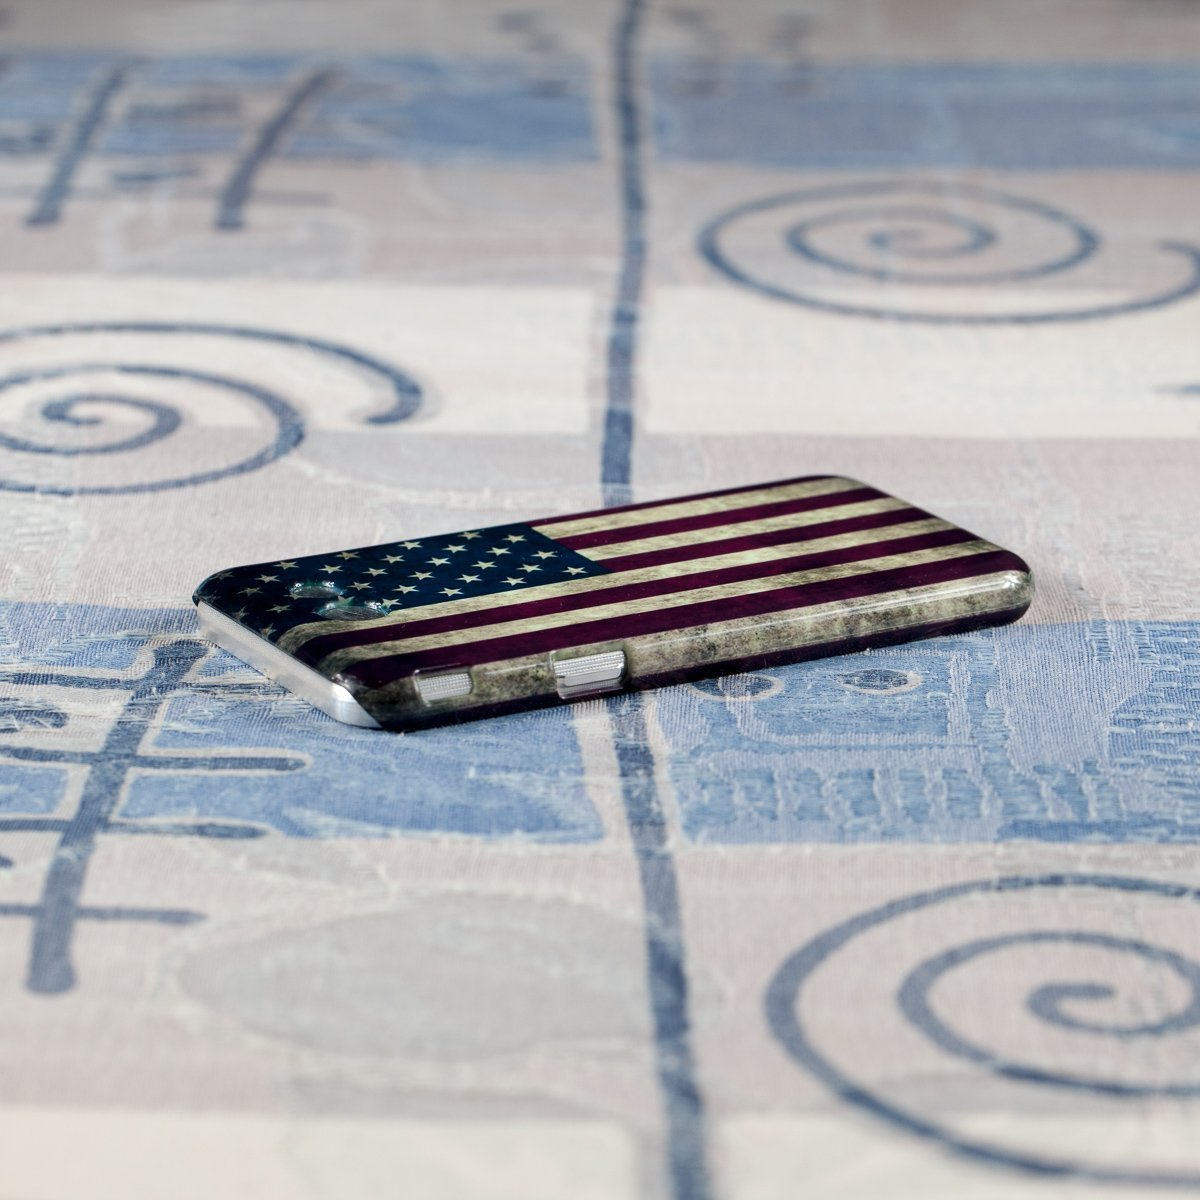 Slim Case for Samsung Galaxy J3 (2017) J327, Emerge, Eclipse, Prime. USA Flag. by Pacography